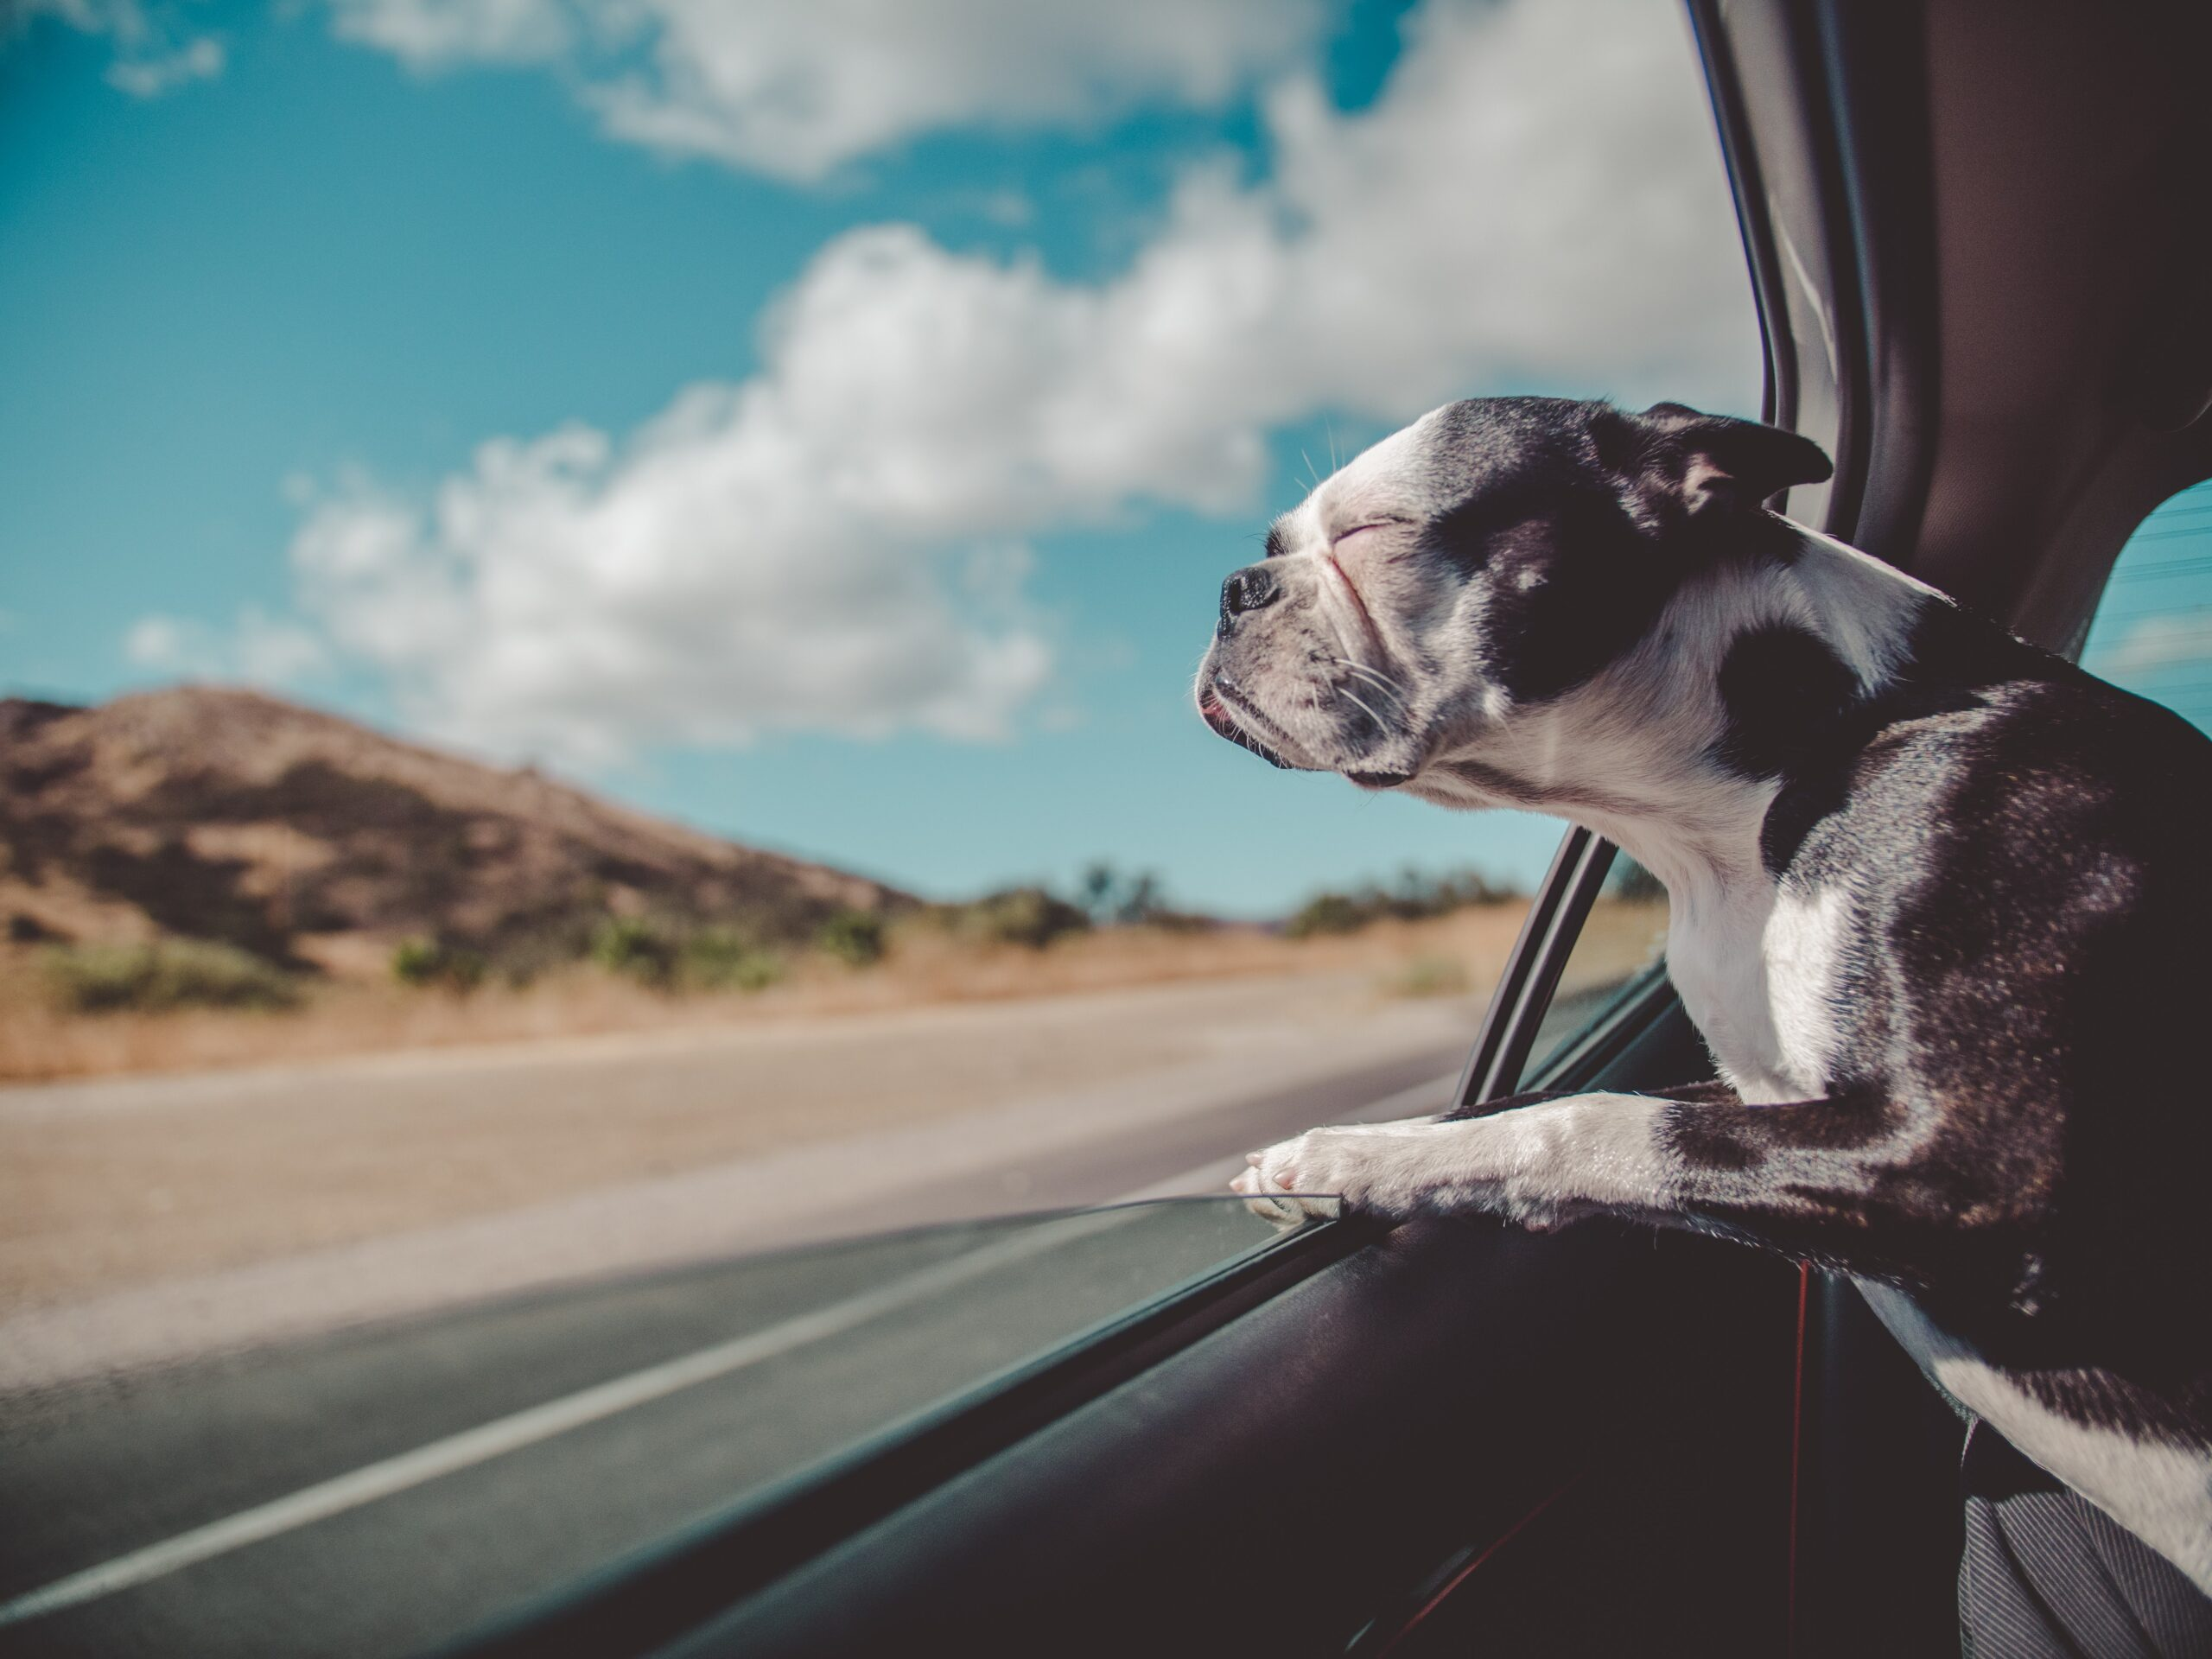 A dog enjoying the breeze out of a car window on a national park road trip.